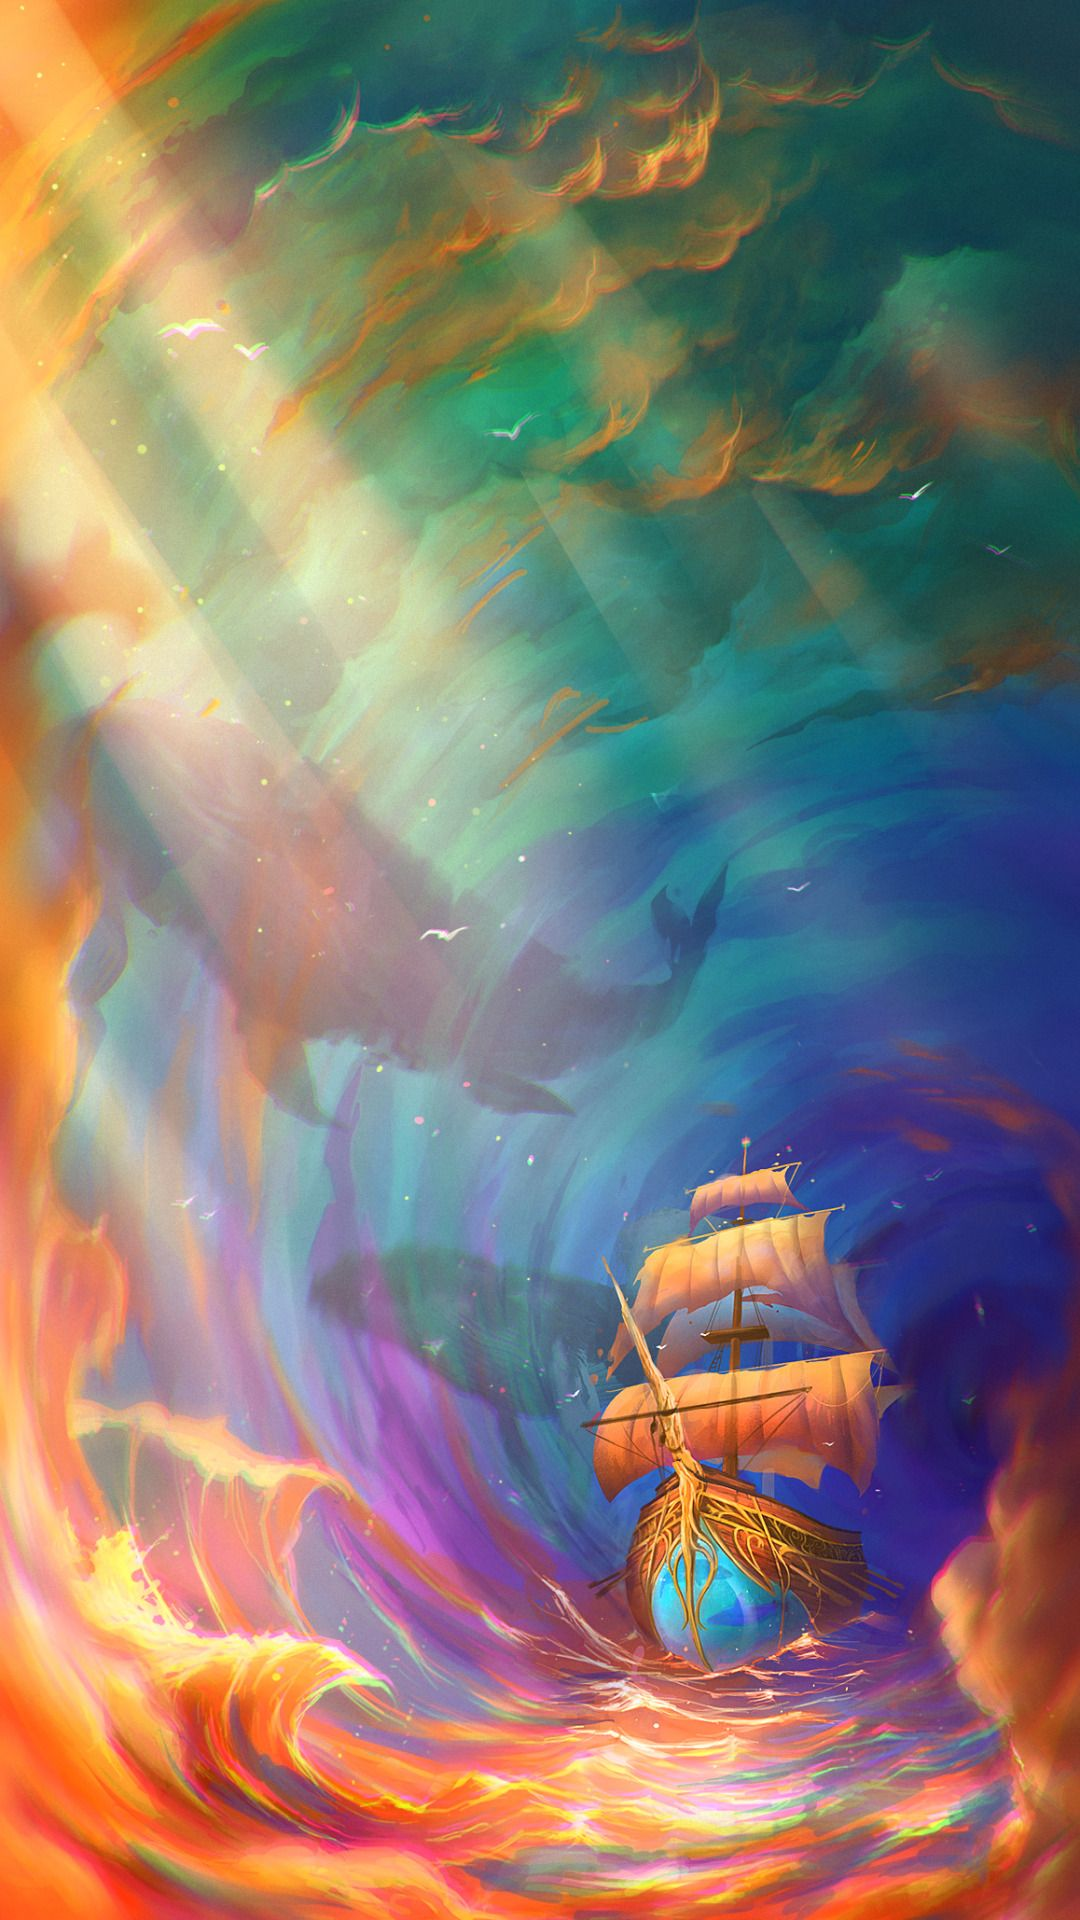 Boat In The Deep Sea Wallpaper In 2020 Art Painting Fantasy